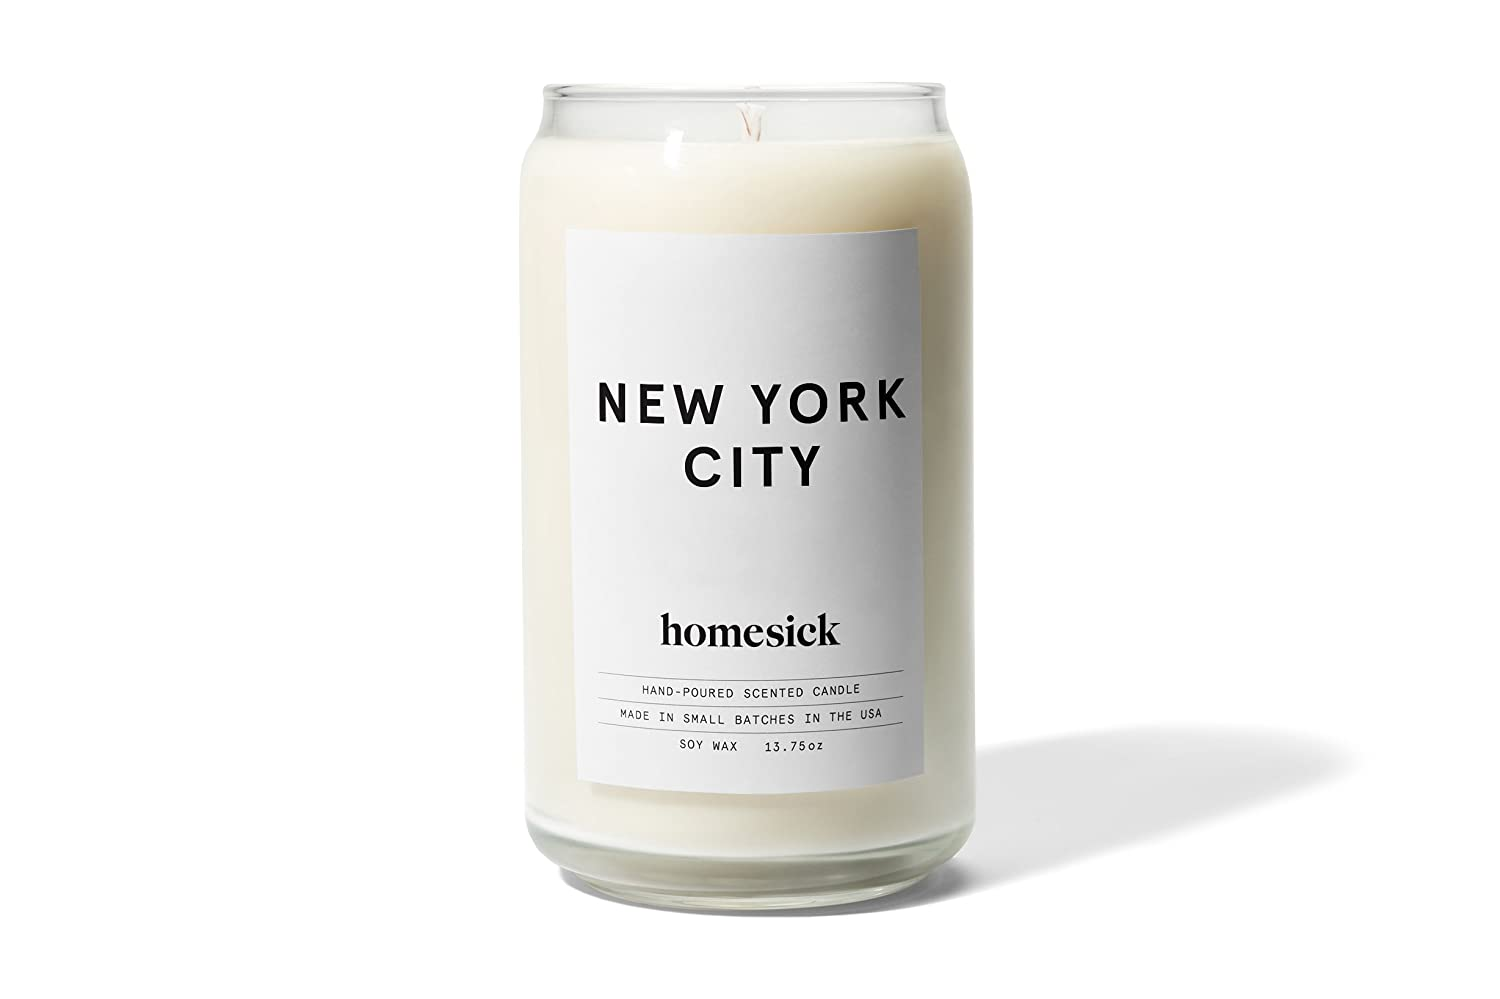 Homesick Scented Candle, New York City Product Labs Inc HSCA1-NYC-WH01